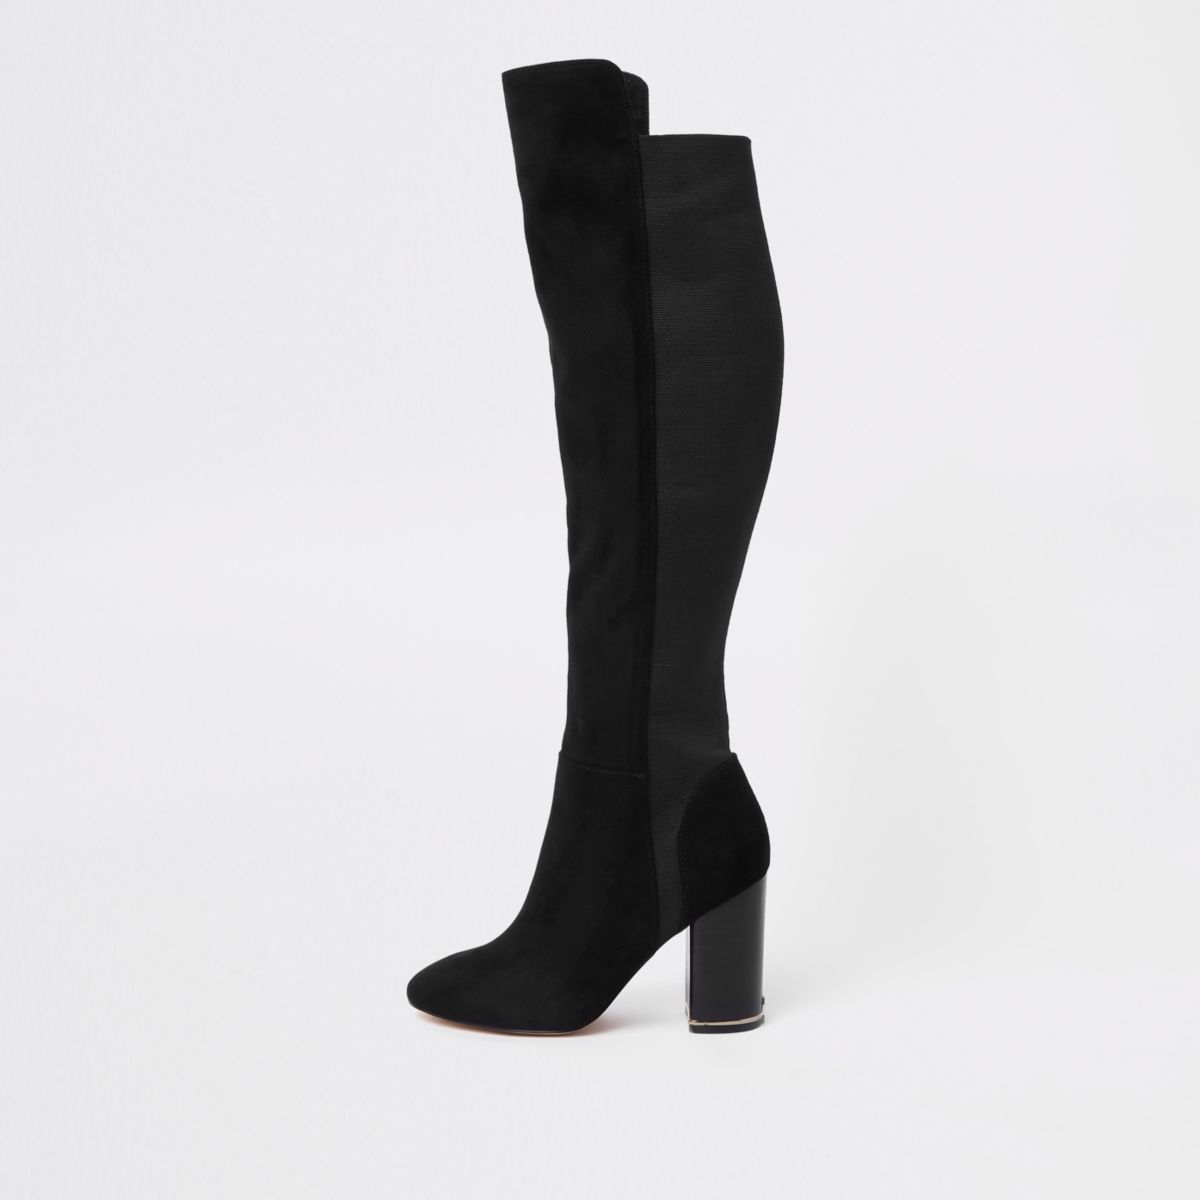 Black wide fit knee high boot